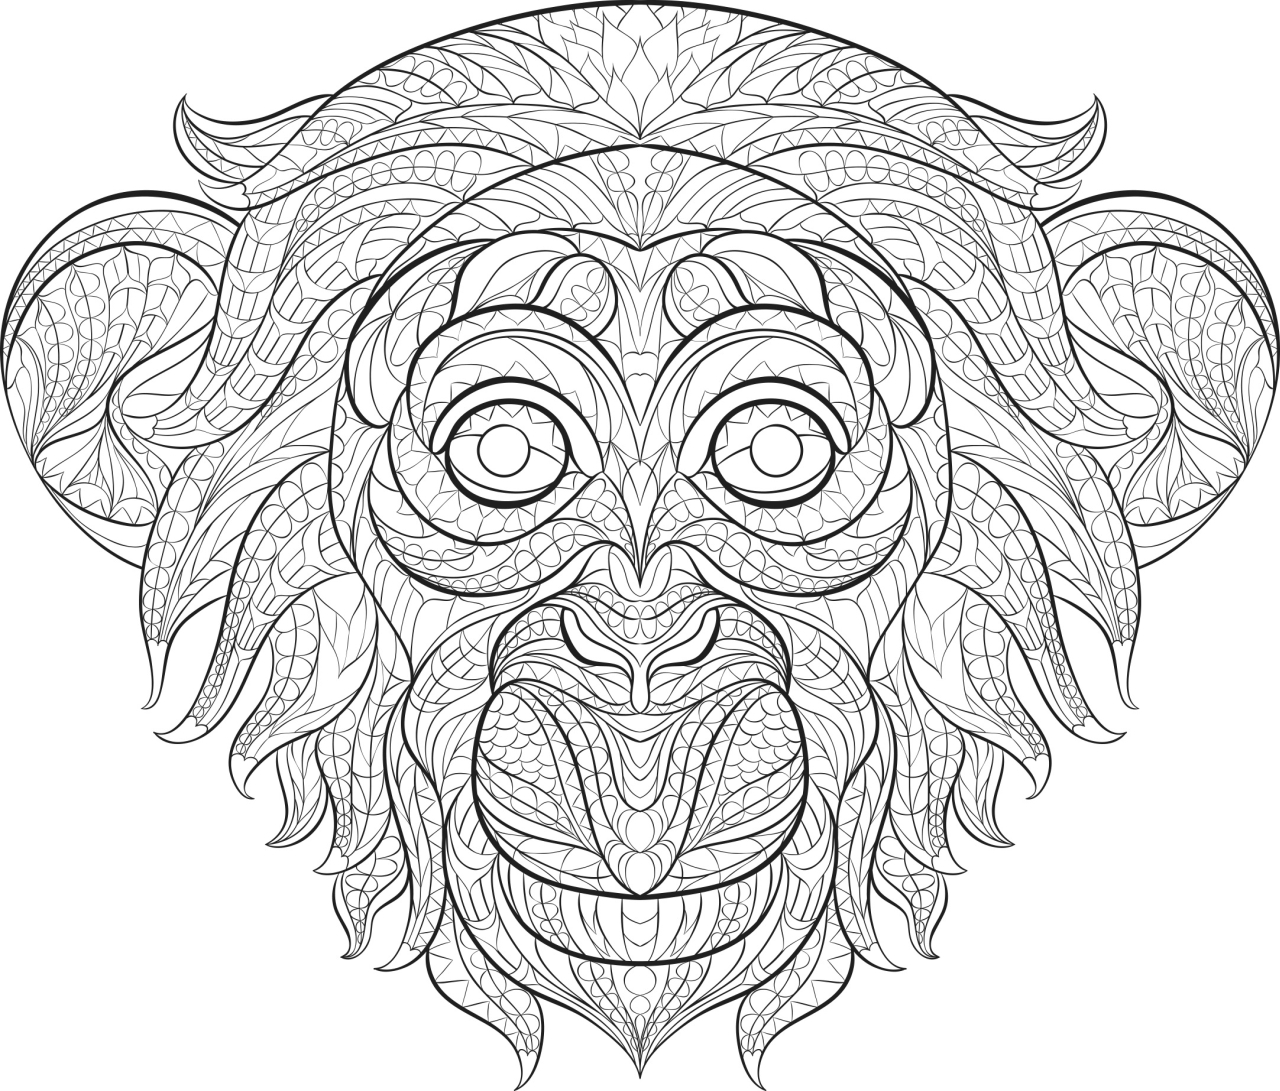 Monkey Coloring Pages for Adults - 60731